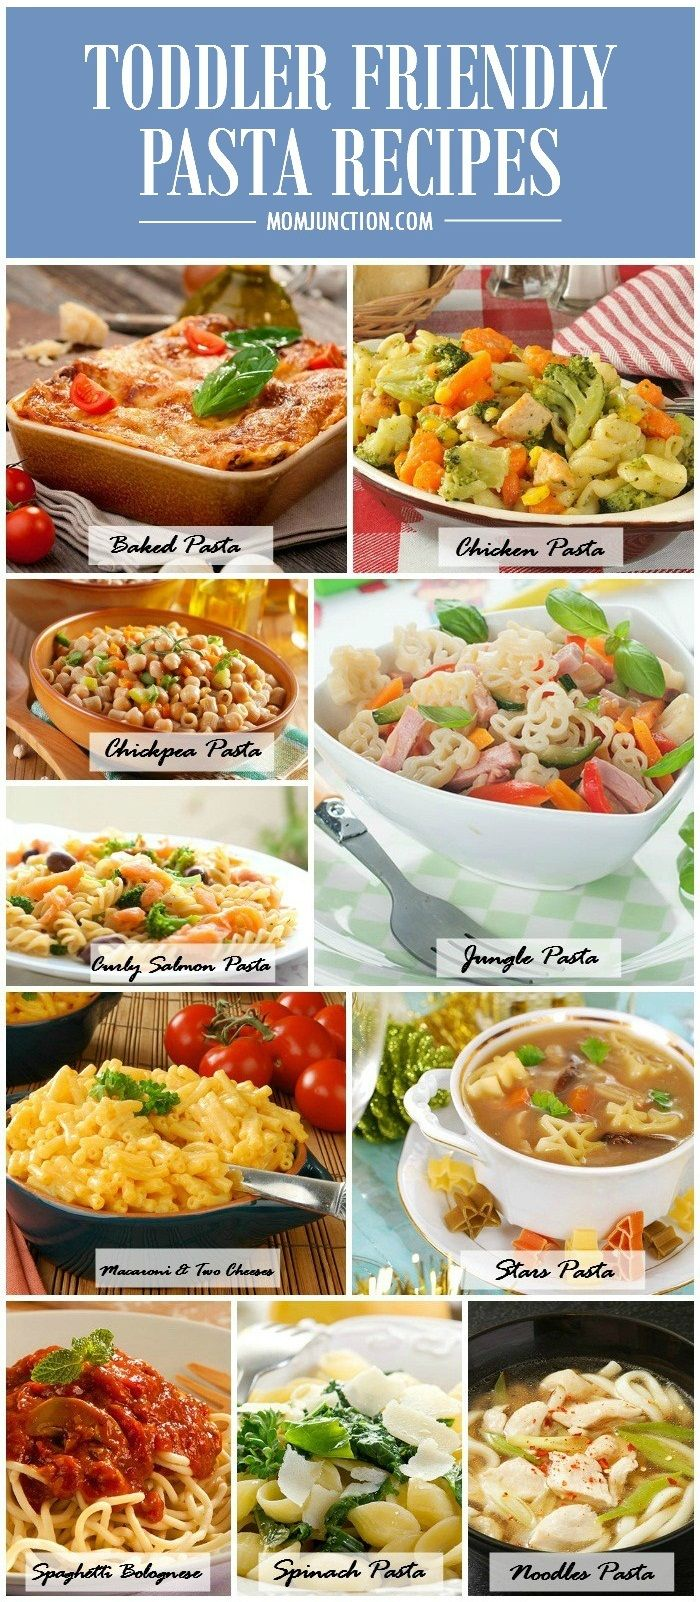 10 Yummy Pasta Recipes Your Toddler Will Love: Ready to do the tango with pasta? Let's cook some delicious dishes for your toddler!